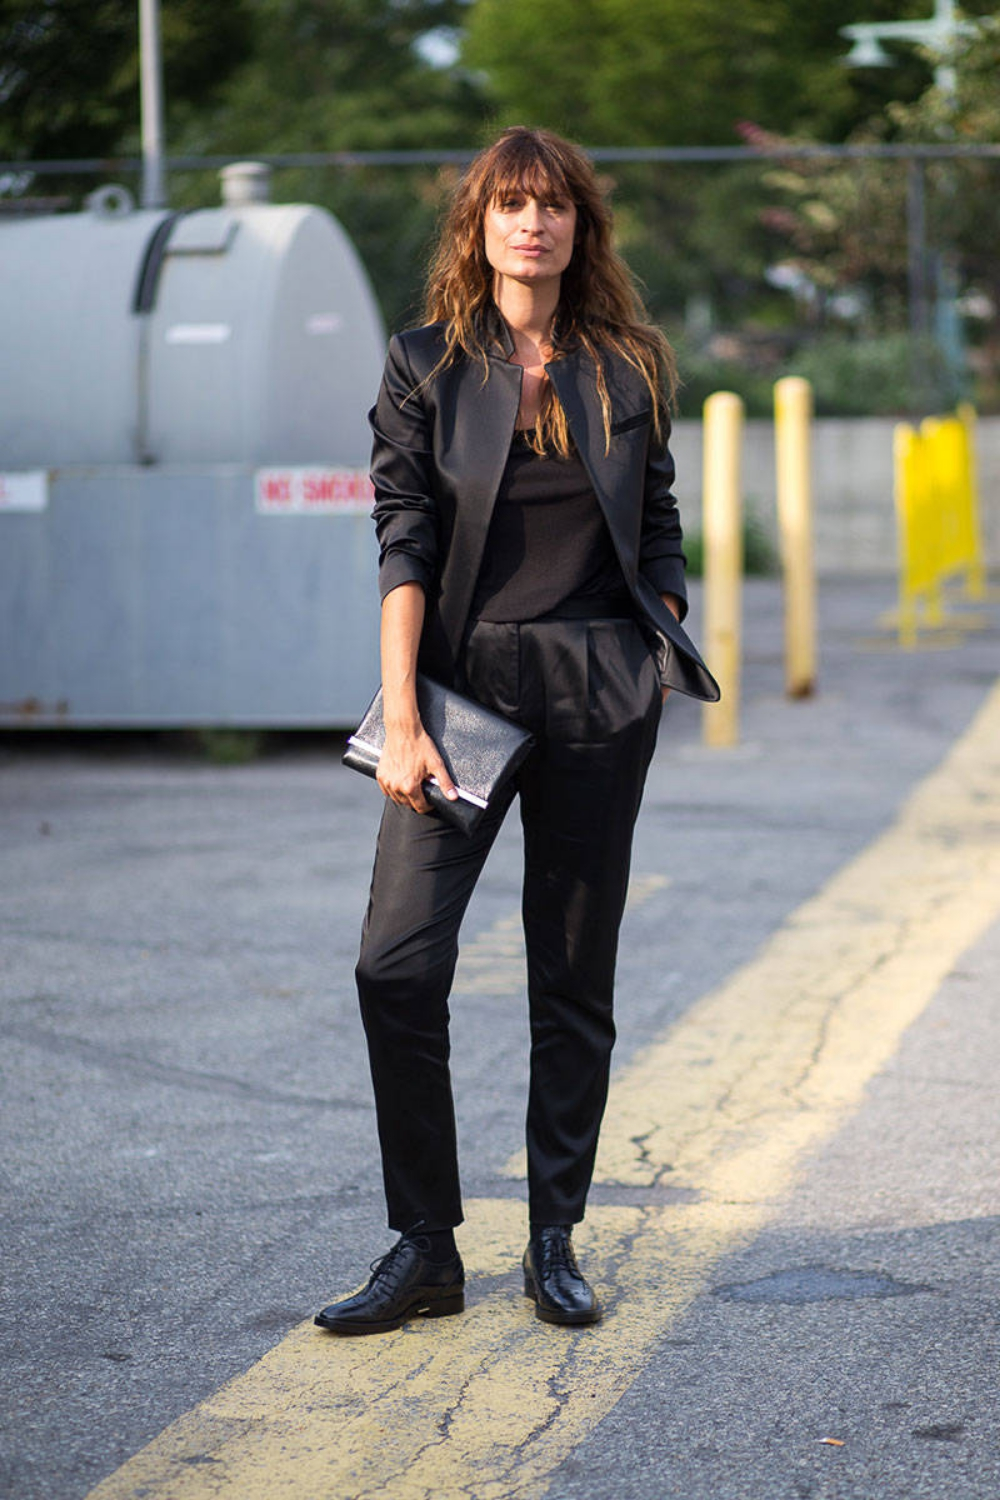 studded-hearts-NYFW-Spring-Summer-2015-shows-streetstyle-caroline-de-maigret-in-black.jpg